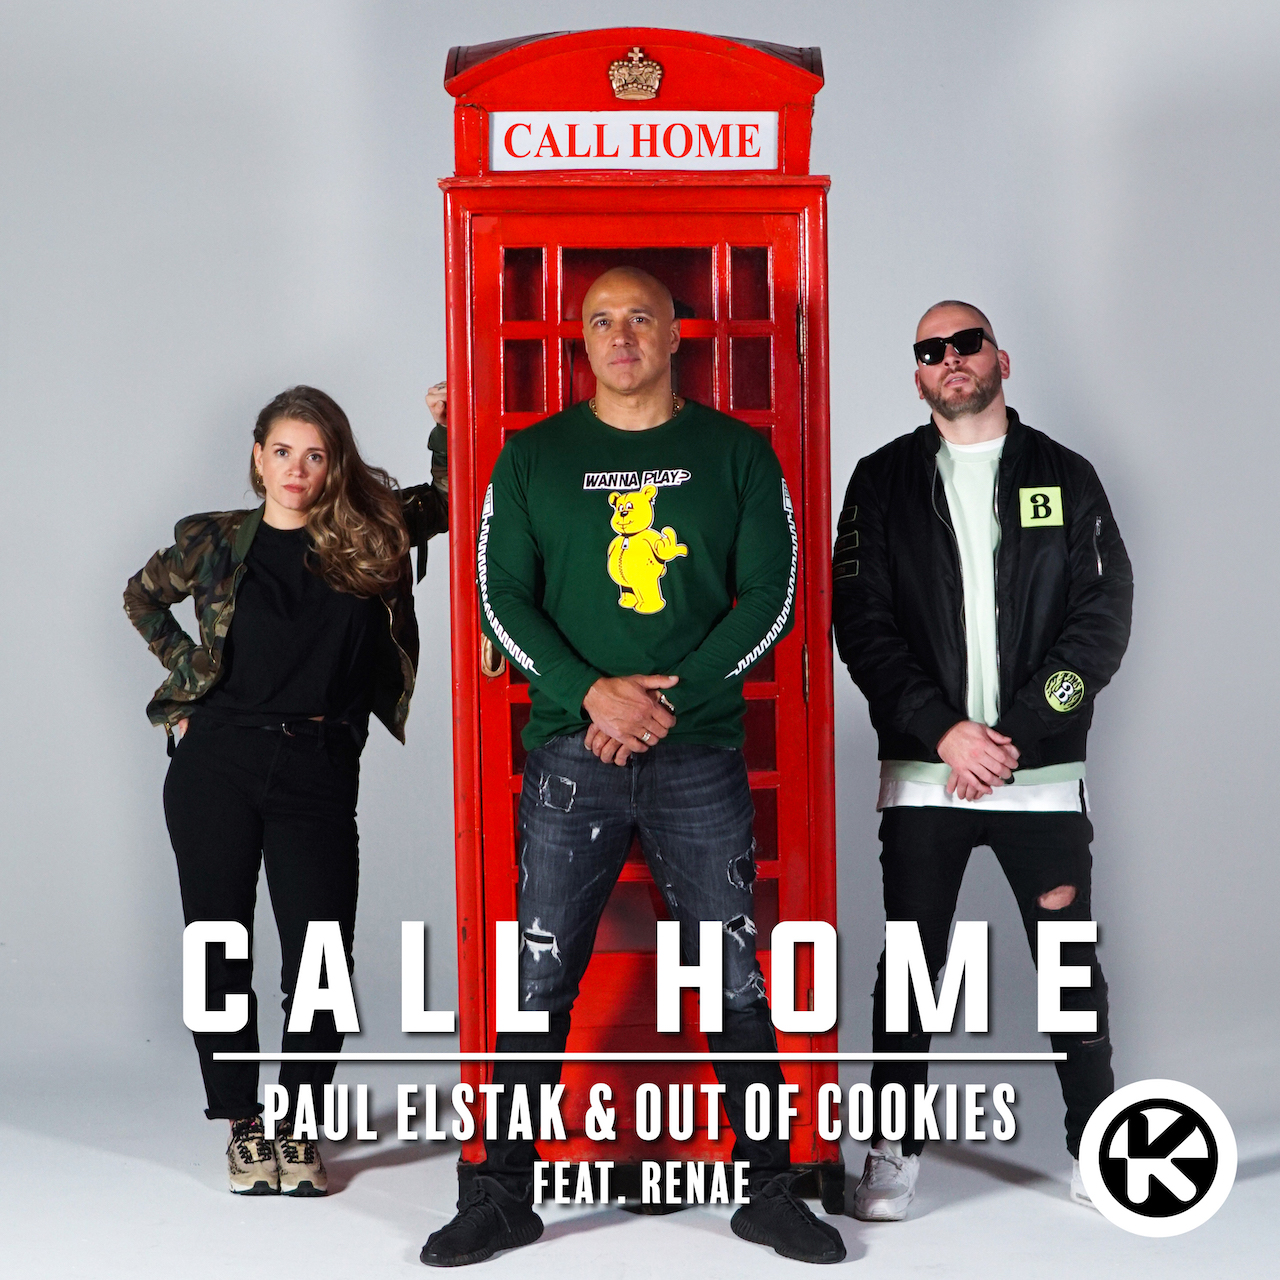 PAUL ELSTAK & OUT OF COOKIES FEAT. RENAE - CALL HOME